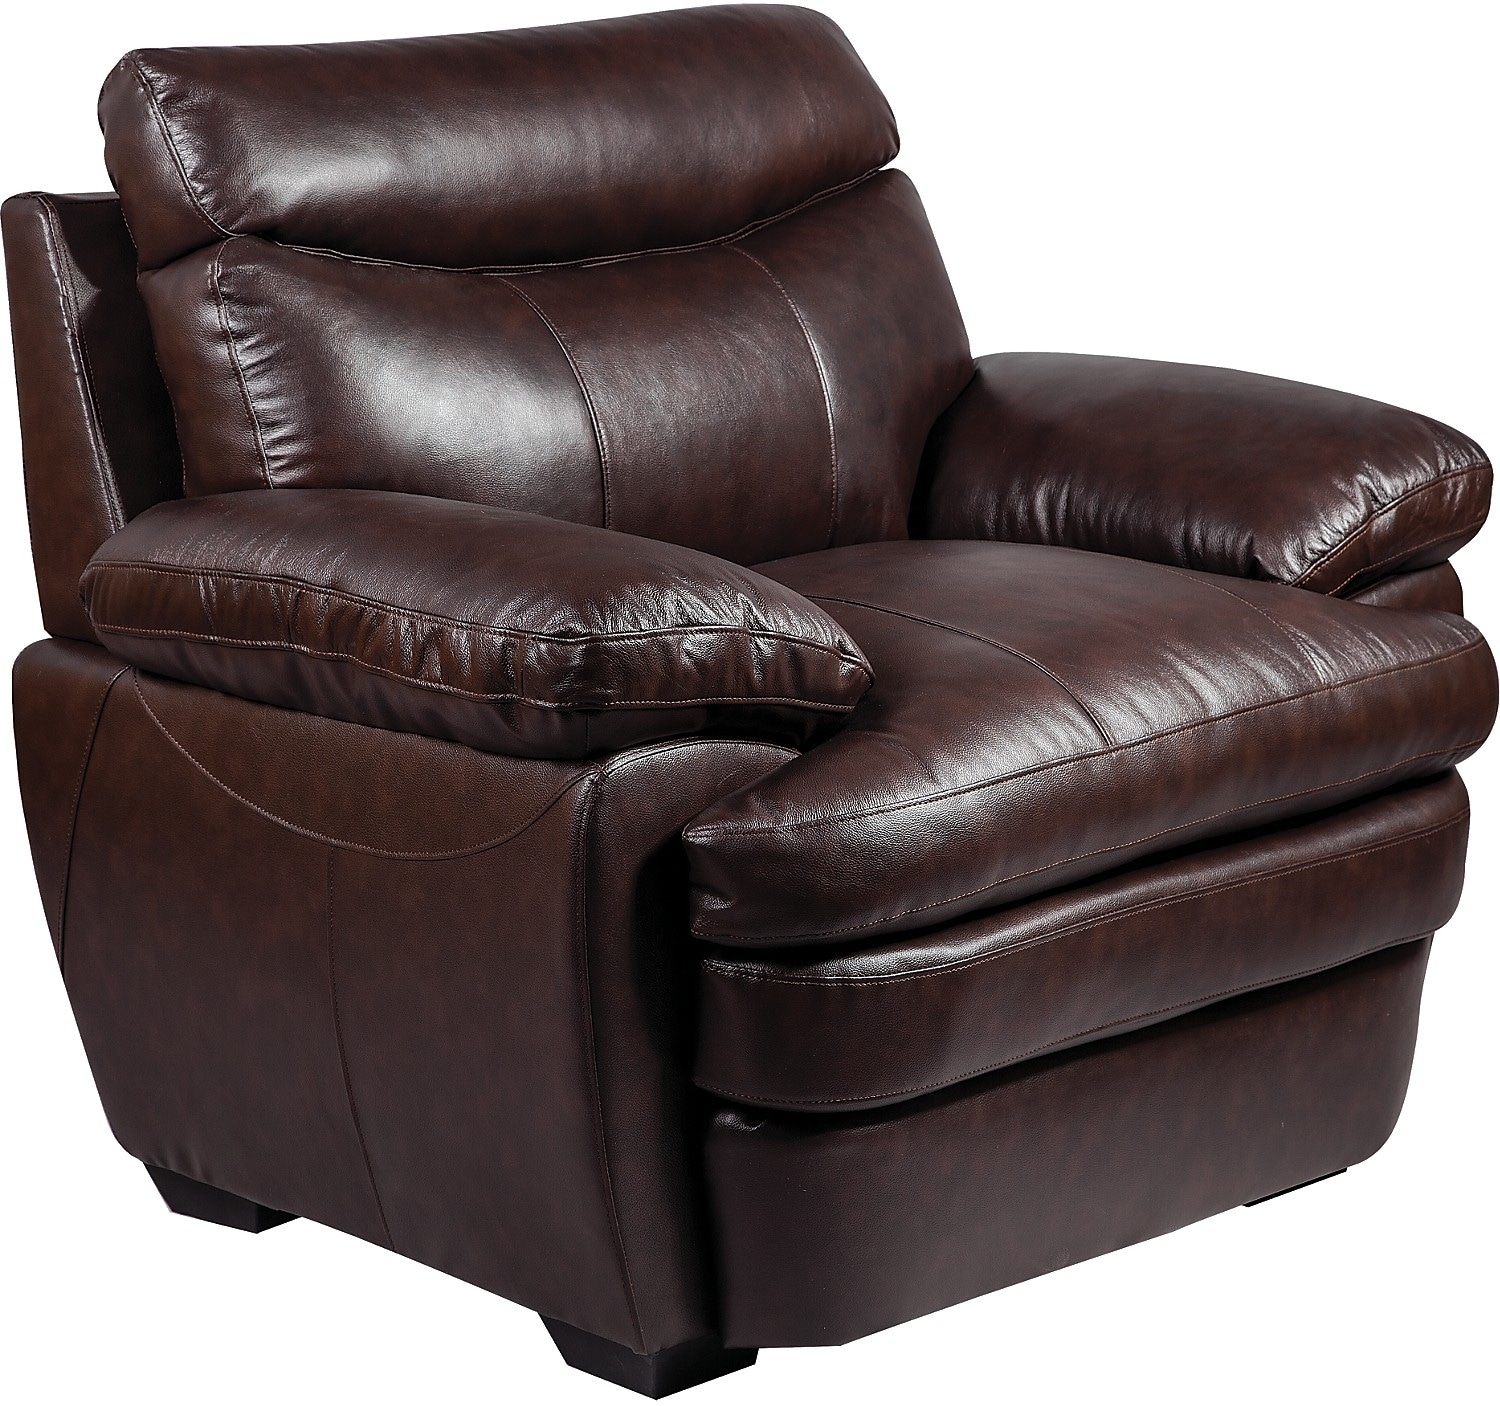 Marty Genuine Leather Chair - Brown